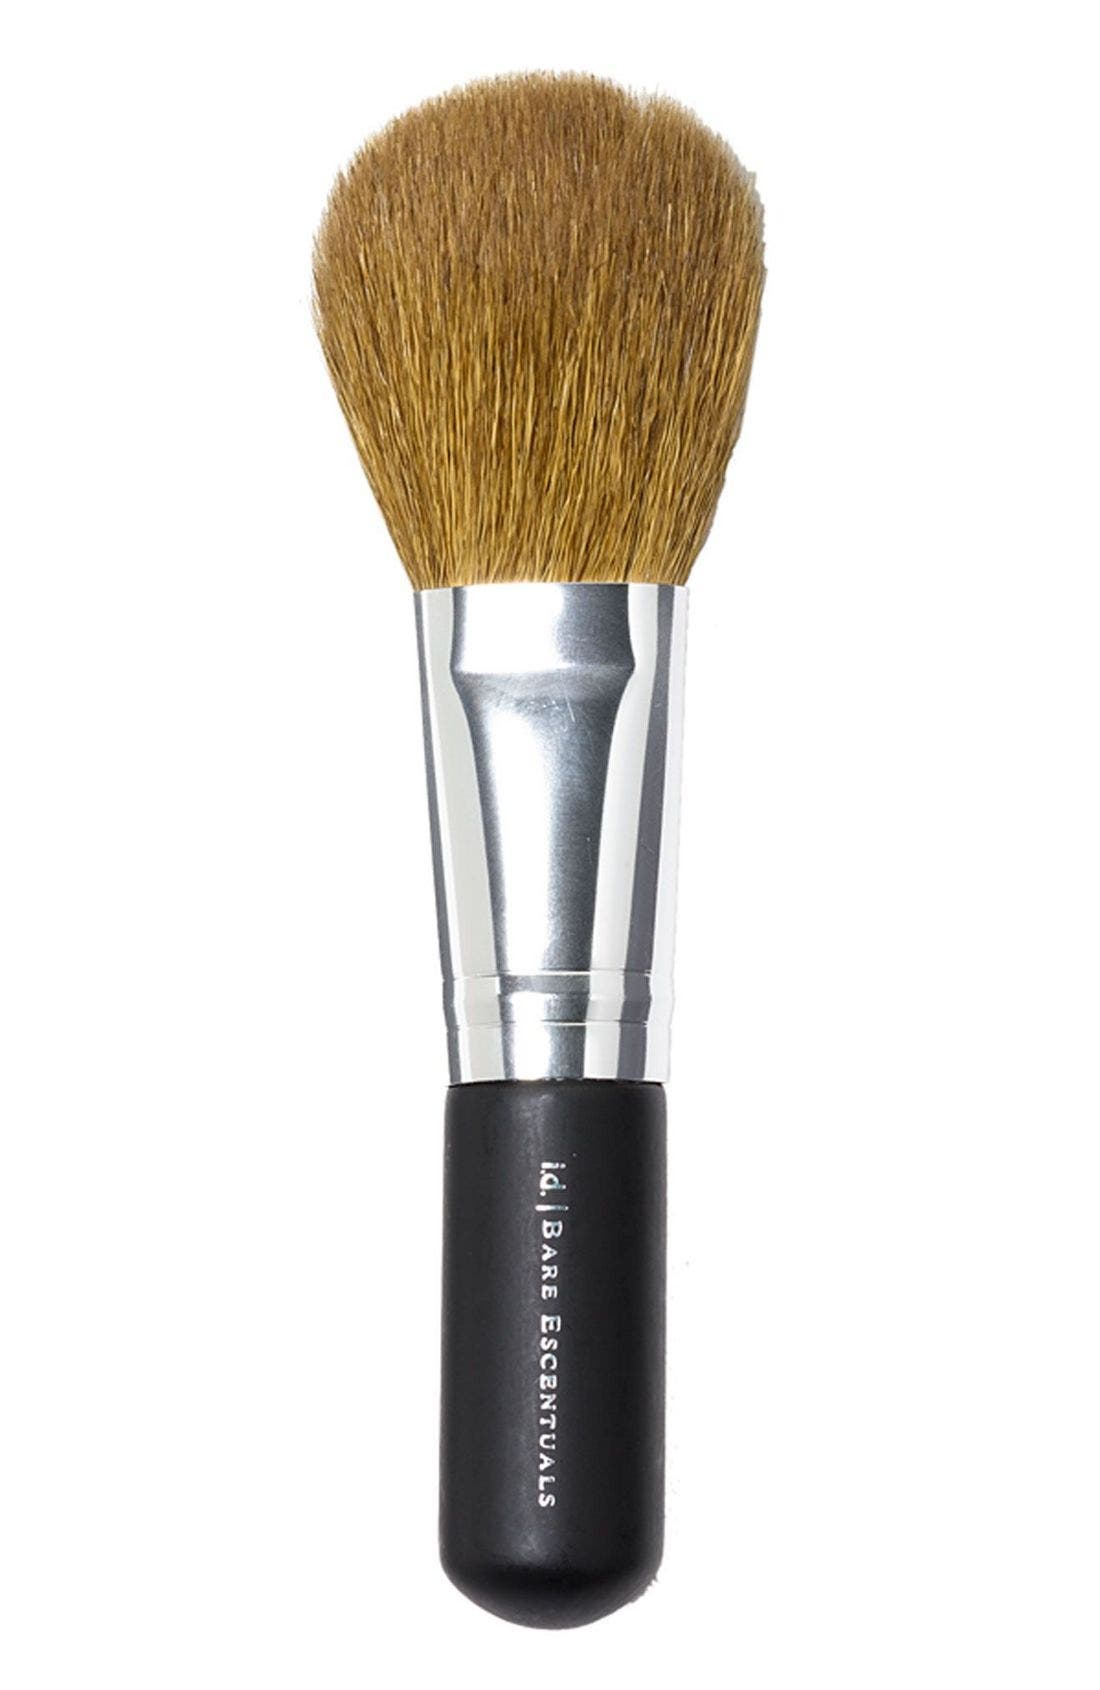 What it is: A natural-bristle face brush with a tapered head that provides medium-to-full coverage. What it does: Ideal for use with loose powder or powder foundation, this flexible, full-tapered brush delivers natural-looking coverage when applied in broad sweeping strokes all over the face. With natural fibers selectively chosen for their quality, the semi-round brush shape makes it versatile and a go-to for your complexion needs. How to use: